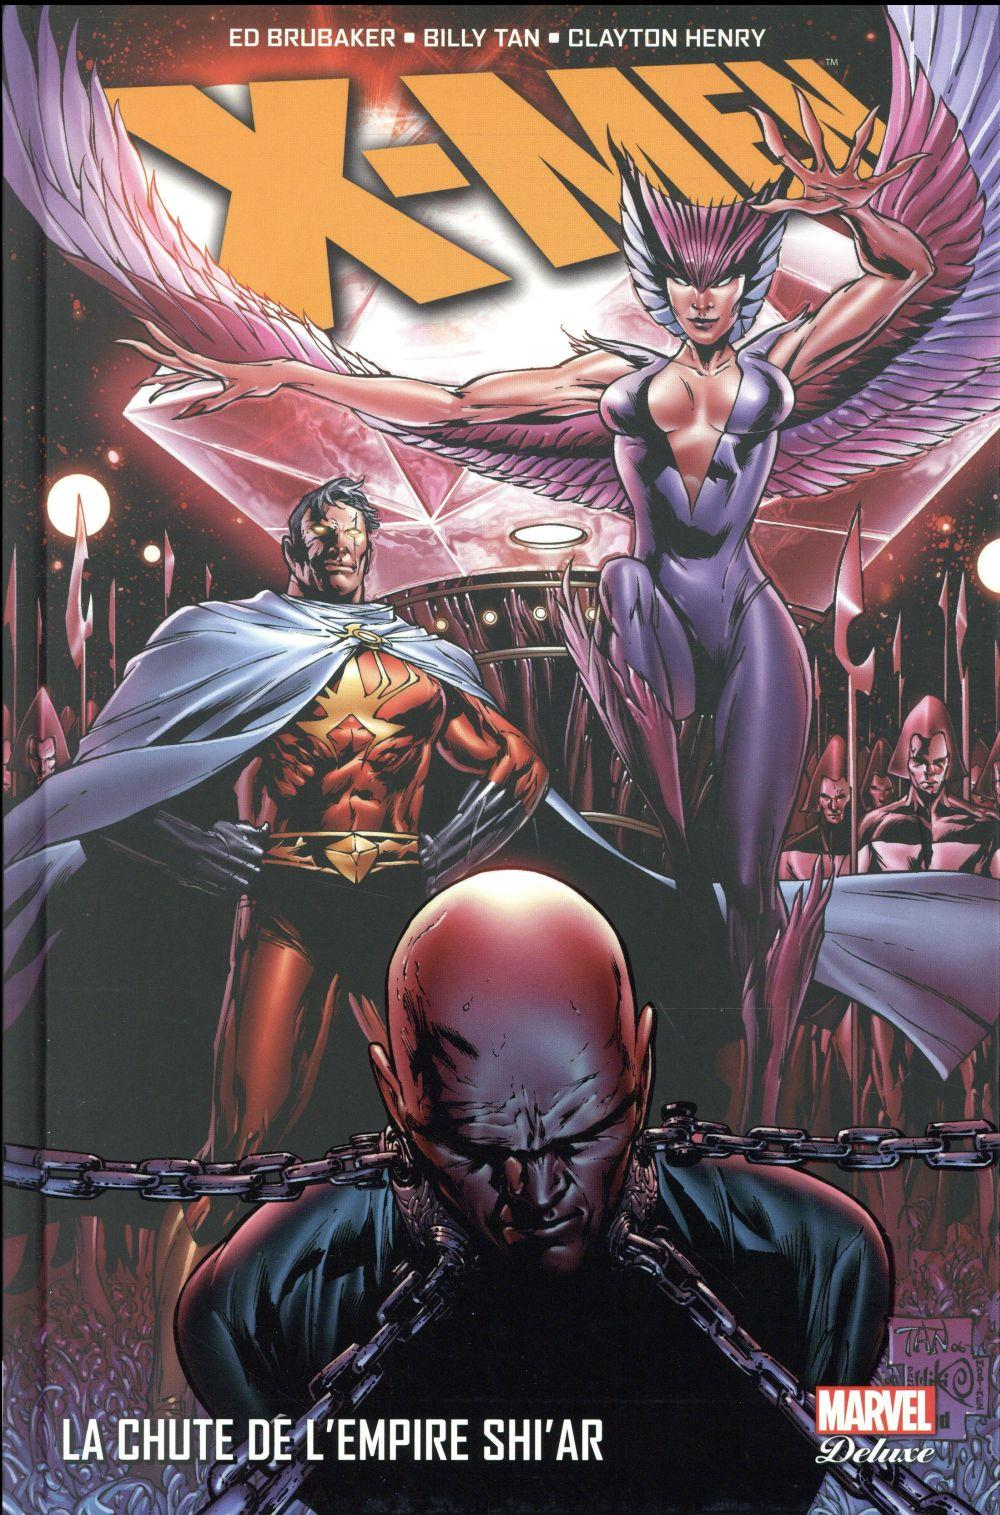 Vente Livre :                                    X-Men ; la chute de l'empire Shi'ar                                      - Ed Brubaker  - Billy Tan  - Clayton Henry